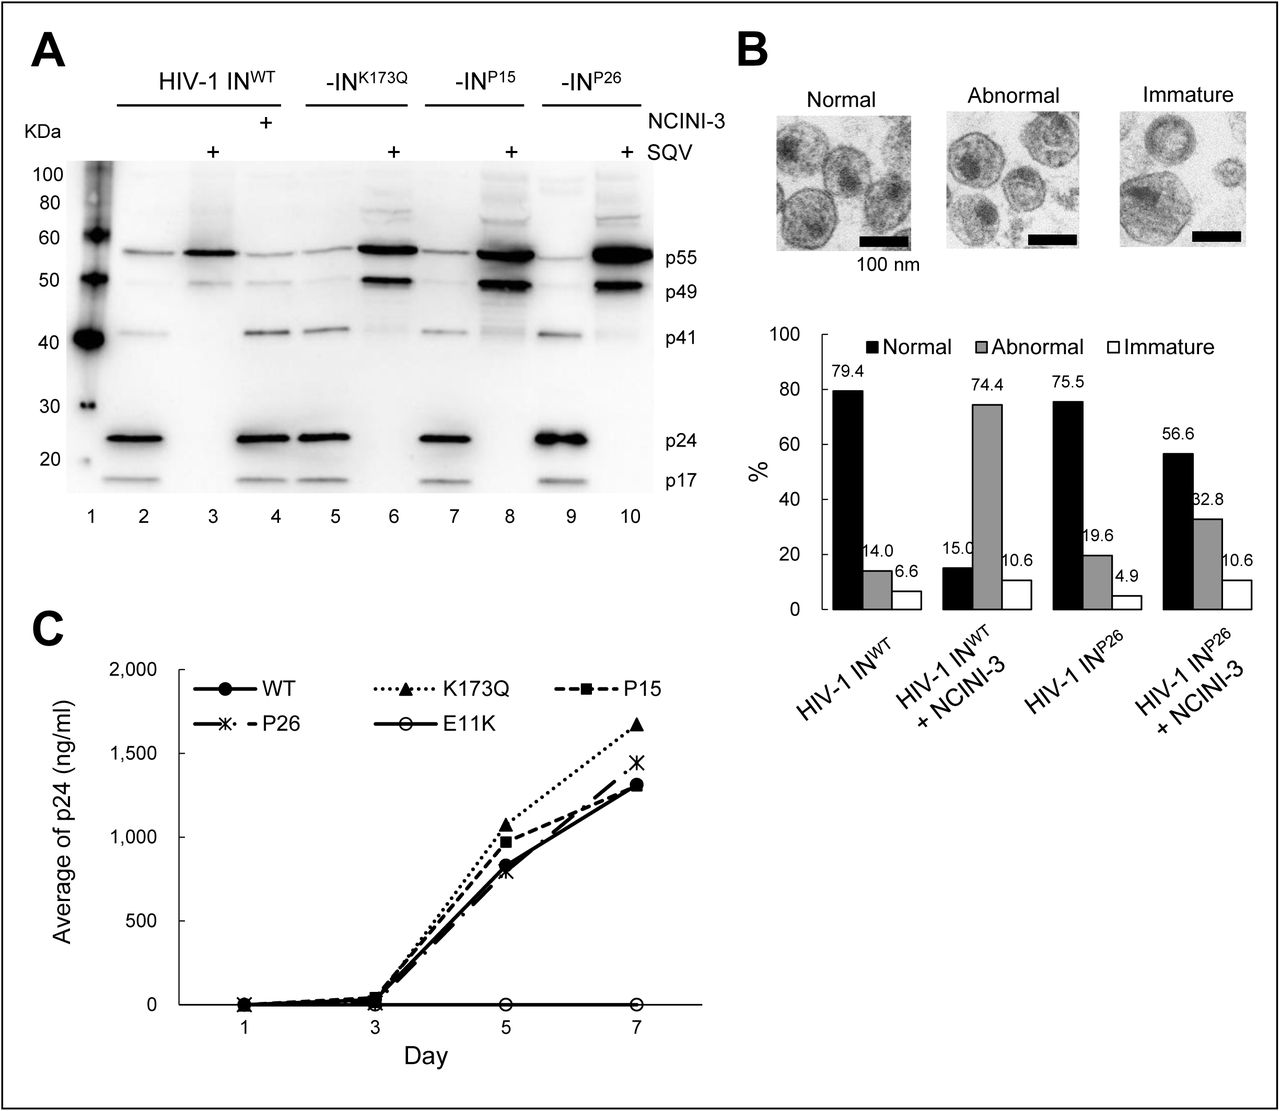 Characteristics of recombinant HIV-1 IN clones carrying the NCINI-3 resistance mutations with IN under-multimerization. (A) Gag proteolytic processing products of wild type and recombinant HIV-1 NL4-3 IN K173Q , -IN P15 , and -IN P26 clones, respectively. The HIV-1 IN clones produced by transfection of pNL 4-3 encoding the NCINI-3 resistance mutations in the presence (Lanes 3, 6, 8, and 10) or absence (Lanes 2, 5, 7, and 9) of 2 µM SQV, or in the presence of 20 µM NCINI-3 (Lane 4). Gag proteolytic processing products normalized with p24 levels of the HIV-1 IN clones are visualized by immunoblotting with anti-HIV-1 p55 + p24 + p17 antibody. ( B ) Morphologies of HIV-1 IN WT and HIV-1 IN P26 clone in the presence or absence of 20 µM NCINI-3 using TEM. Representative images of normal, abnormal, and immature HIV-1 particles (Magnification, 168,000 x scale bar, 100 nm) are shown at upper panel. Over 100 numbers of the HIV-1 particles are examined from several images of each HIV-1 sample, and percentages of HIV-1 morphology classified as normal, abnormal, and immature are shown in lower graph. ( C ) Replication kinetics of HIV-1 -IN WT -IN K173Q , -IN P15 , -IN P26 , and -IN E11K clones, respectively. MT-4 cells are exposed to the HIV-1 preparation normalized with the p24 levels, and production of the HIV-1 clones from the MT-4 cells is monitored at day 1, 3, 5, and 7 by p24 ELISA.